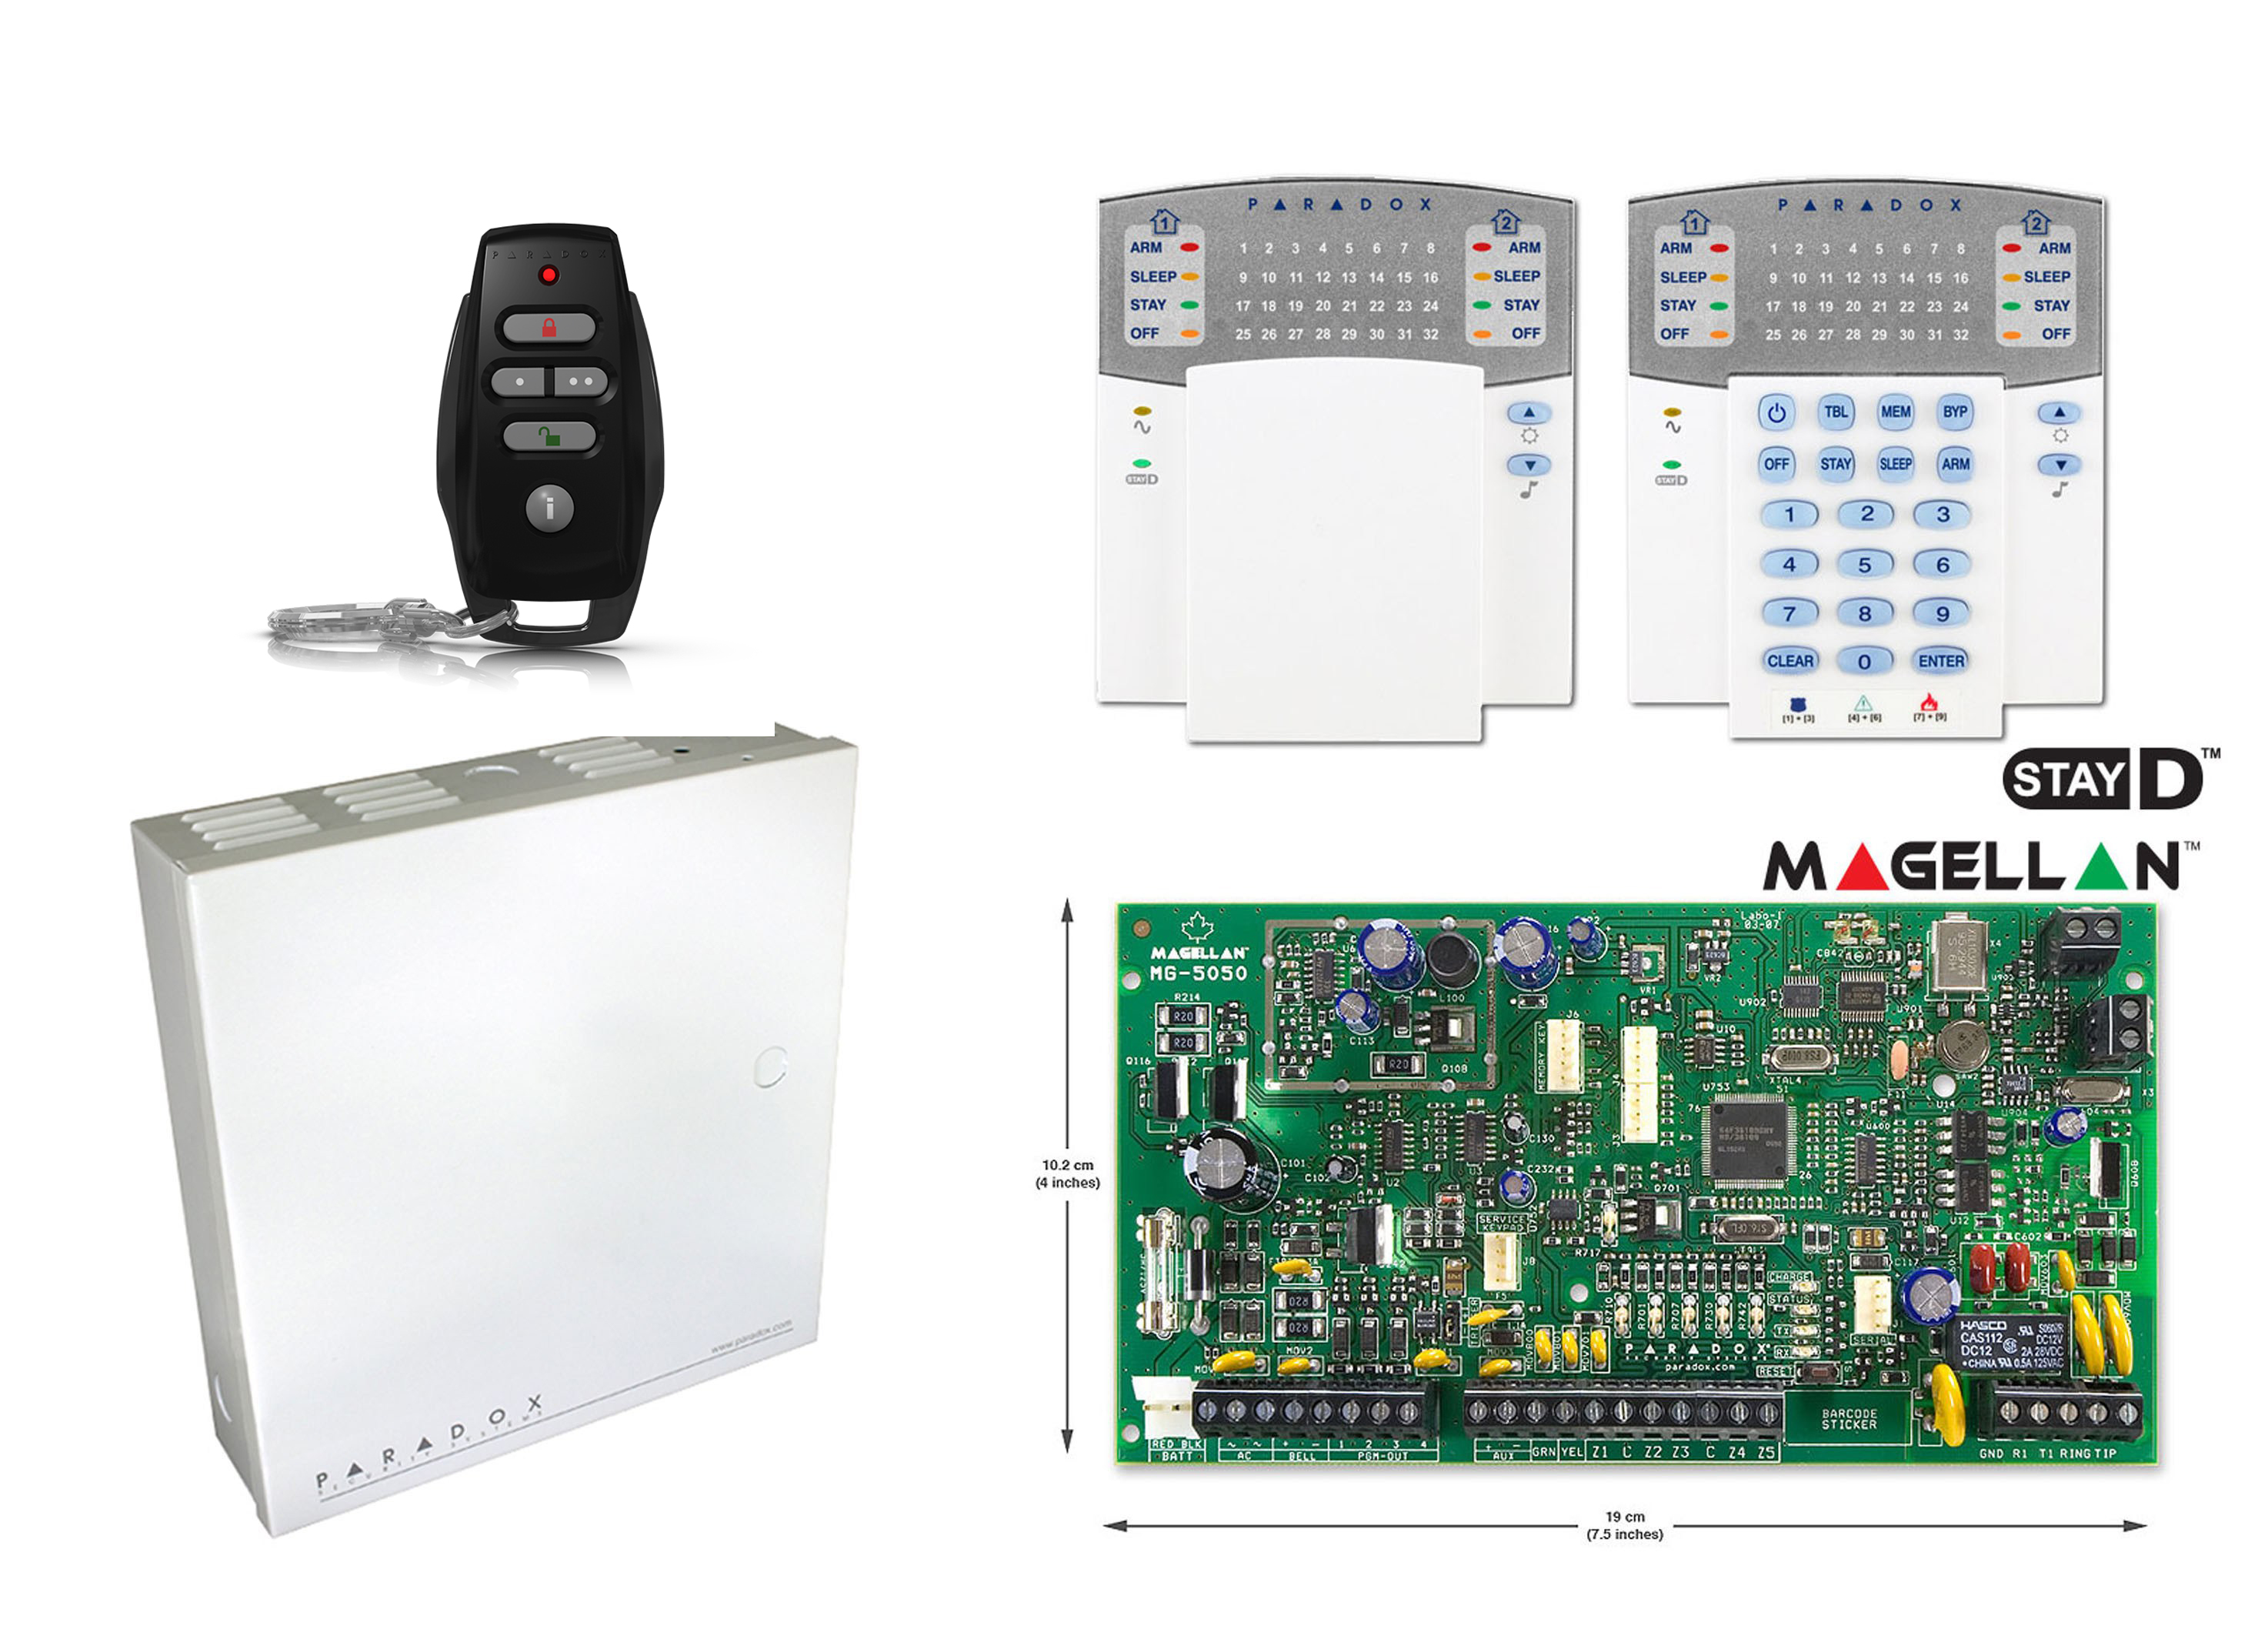 paradox mg5050 upgrade kit includes rem25 k32 led keypad rh homesecurity1st co za paradox mg5050 programming guide paradox mg5050 installation guide